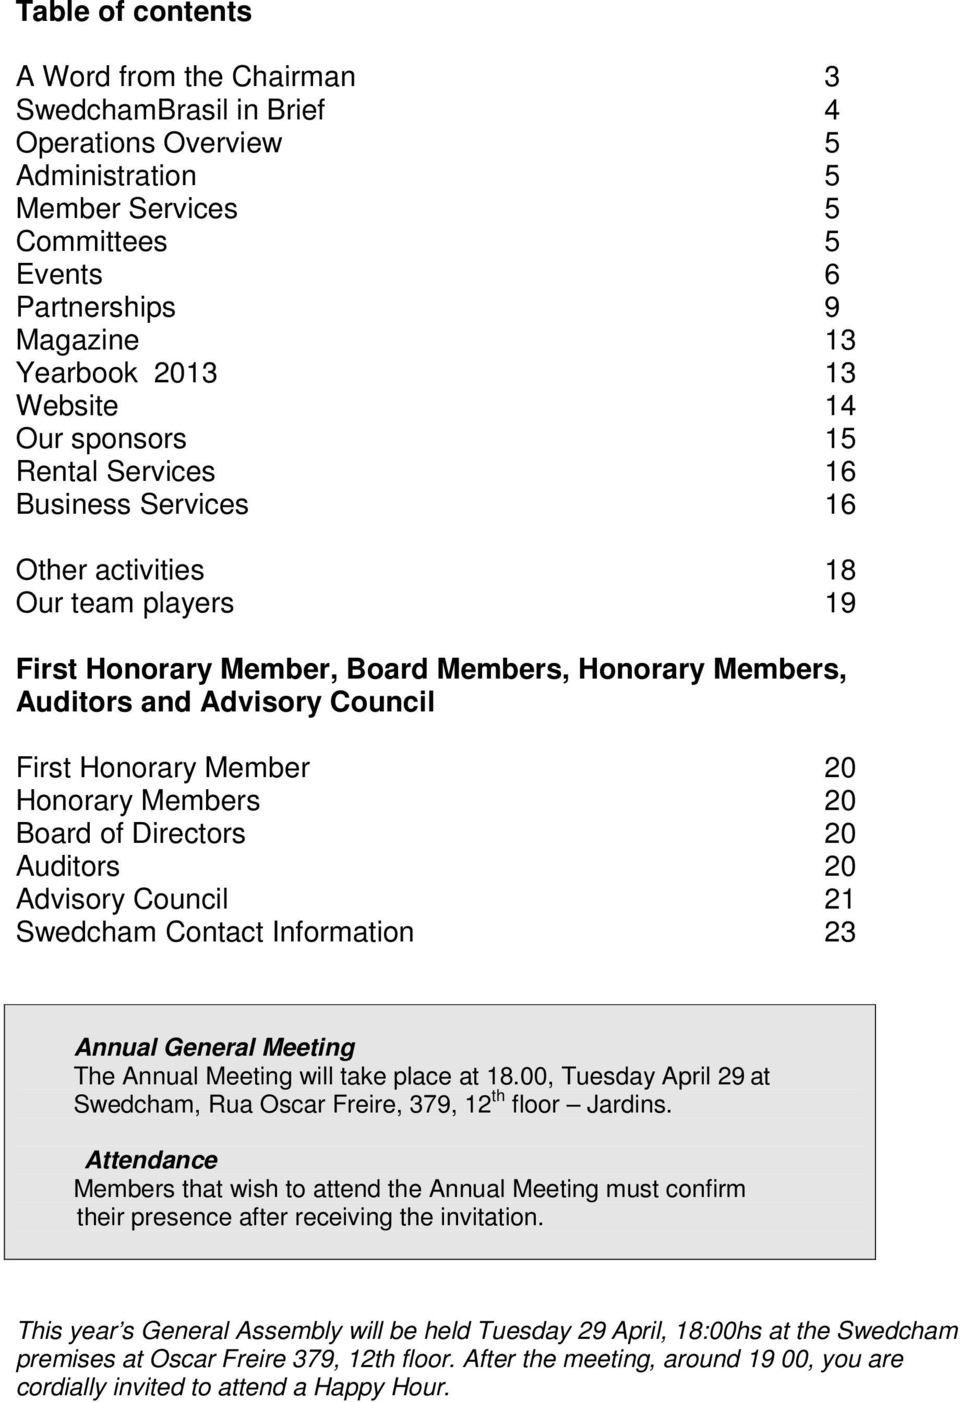 Honorary Member 20 Honorary Members 20 Board of Directors 20 Auditors 20 Advisory Council 21 Swedcham Contact Information 23 Annual General Meeting The Annual Meeting will take place at 18.